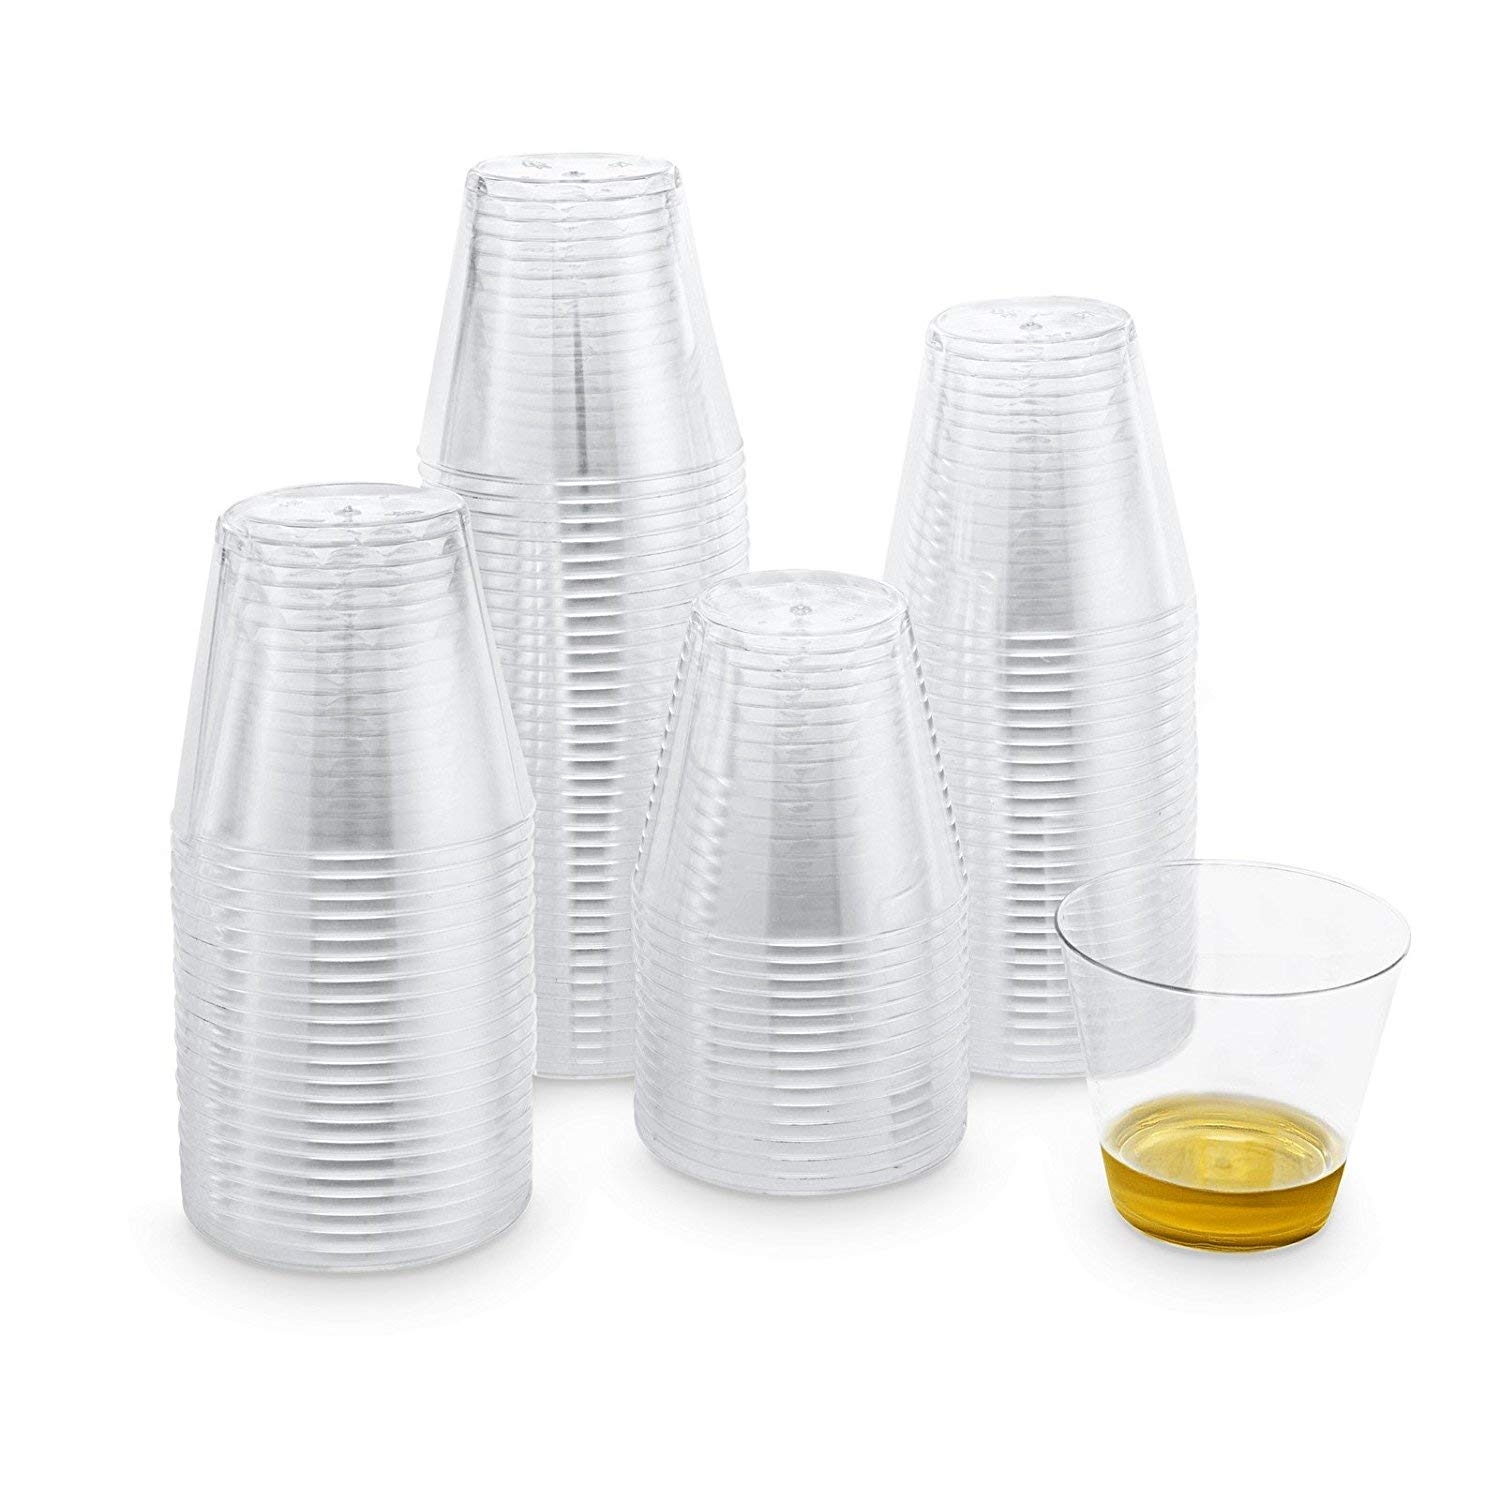 Partyable 100 Count 5 oz. Heavyweight Tumblers by partyable